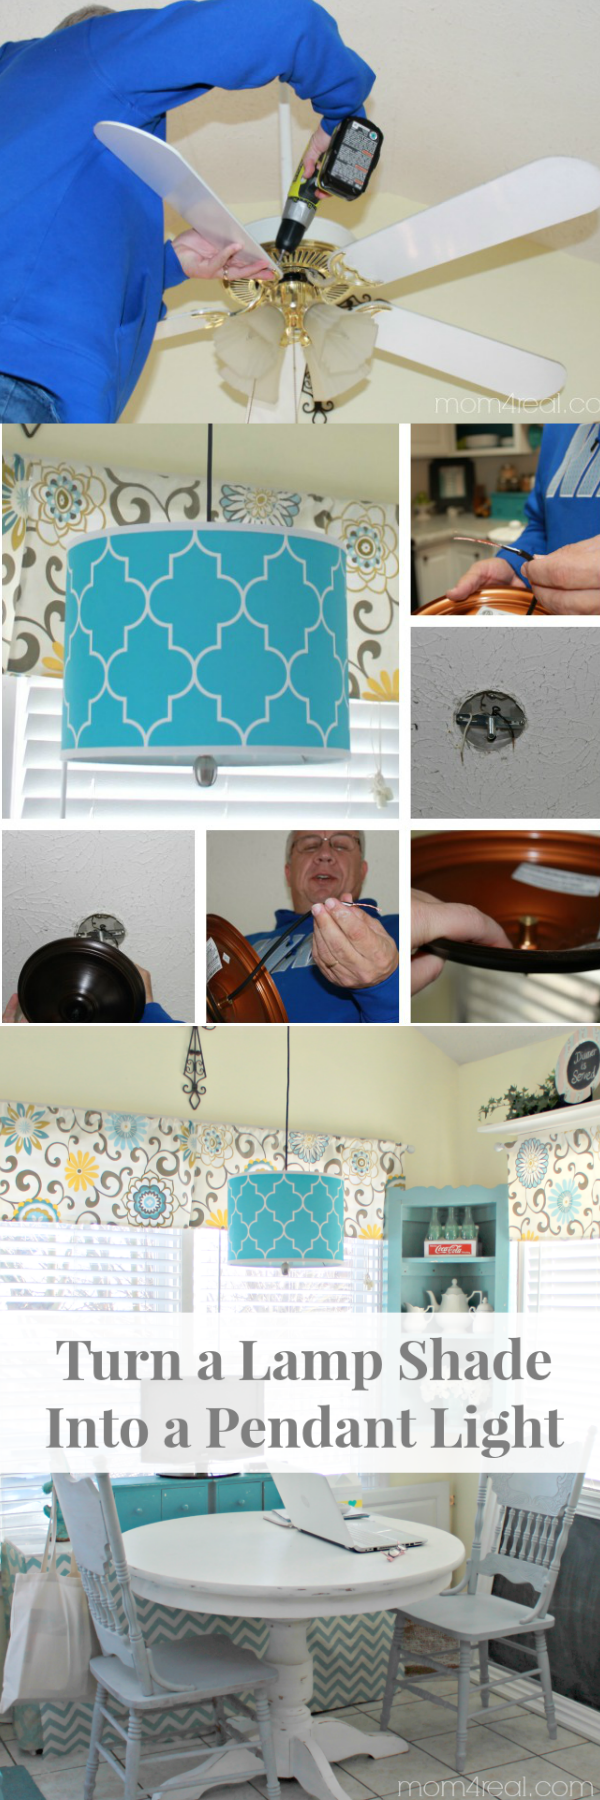 Turn A Lamp Shade Into A Pendant Light   Mom 4 Real